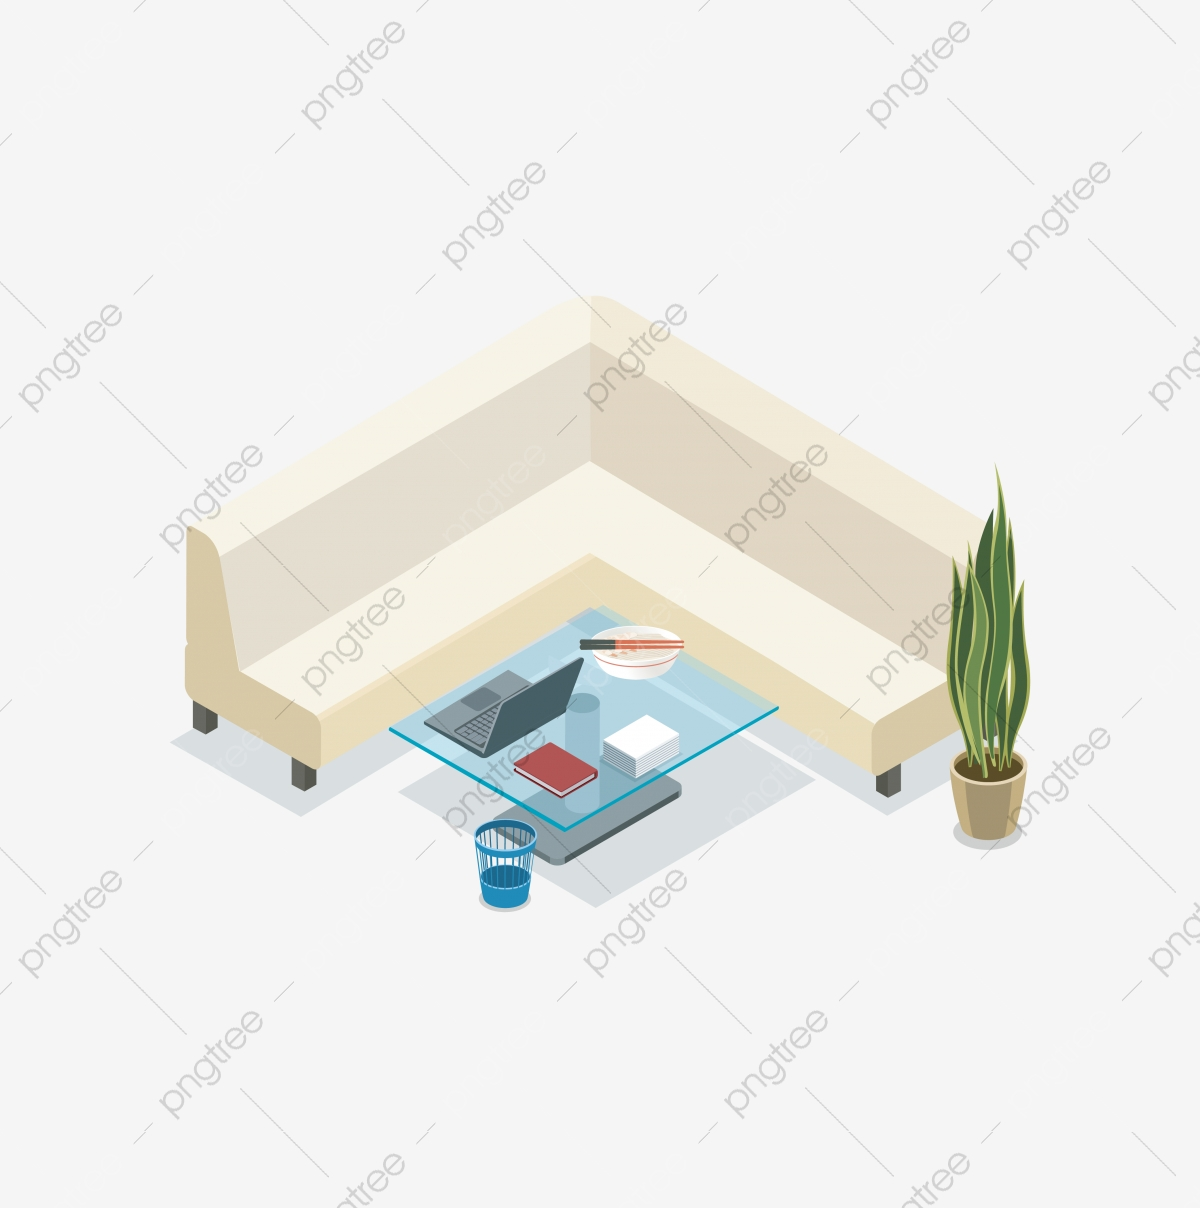 Glass Table Potted Plant Coffee Table Office Indoor Cartoon